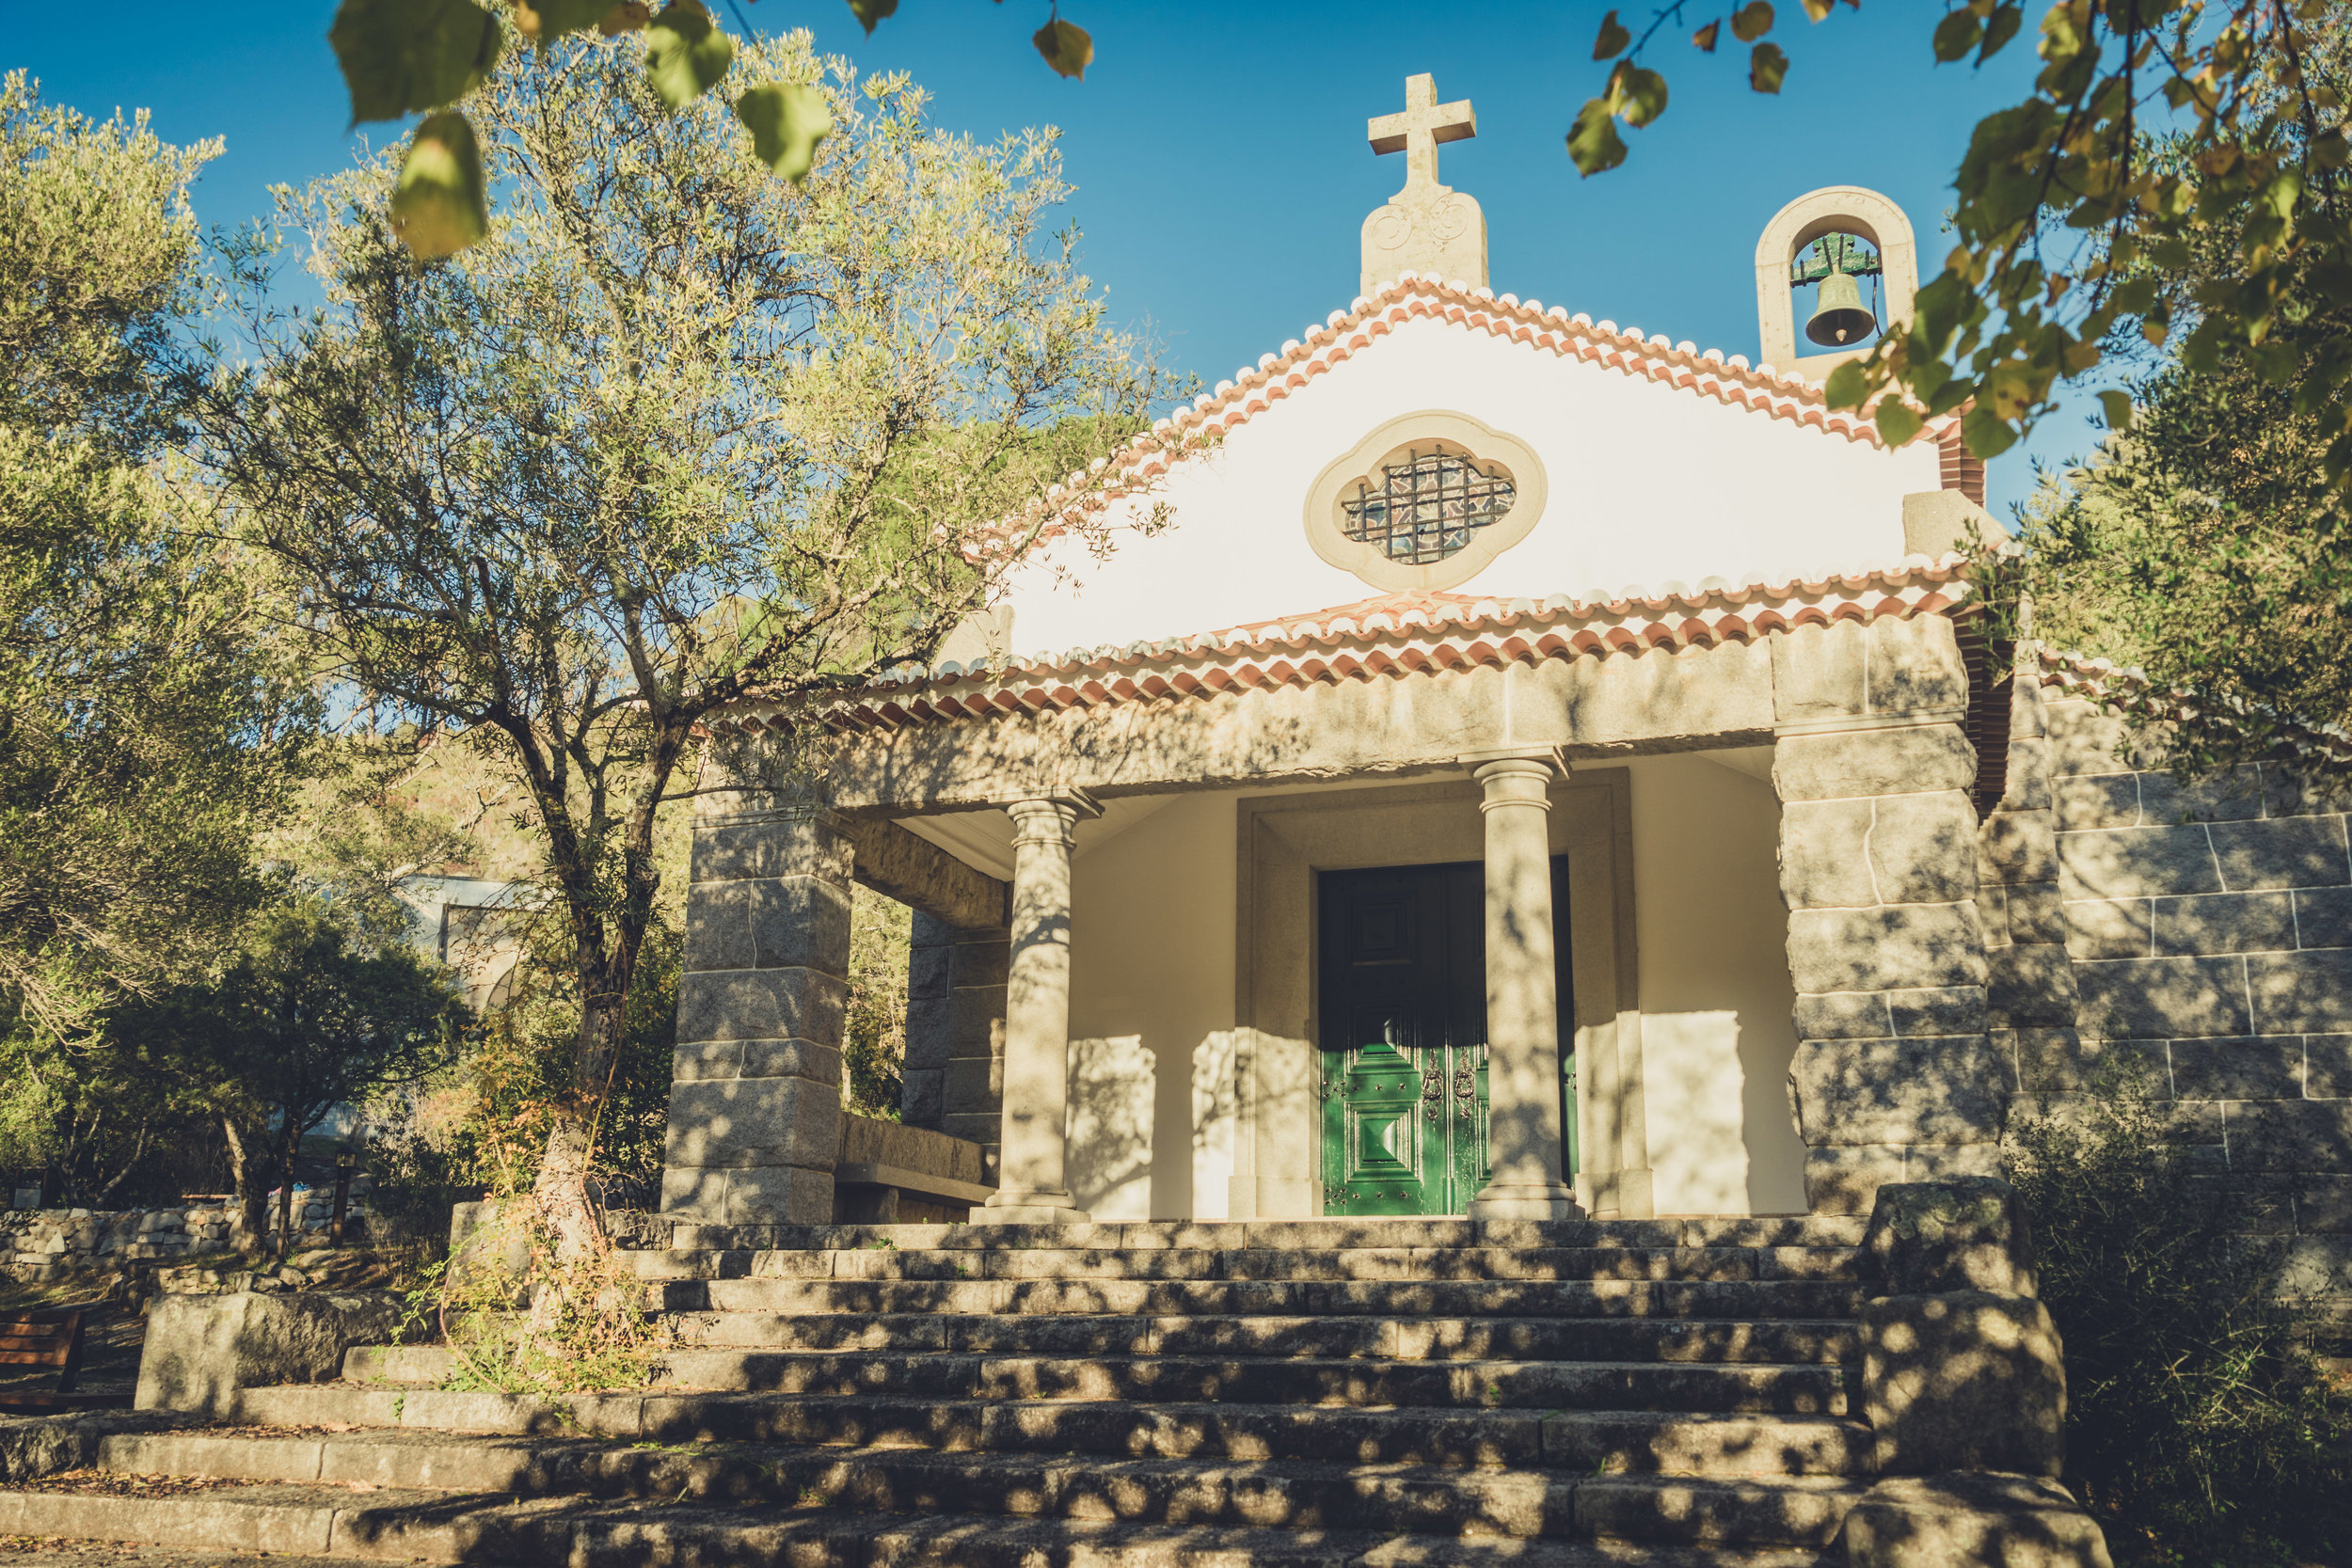 caldas de monchique portugal. walking through the forest. walking through the grounds of the spa. lovely setting. church in the spa town. church..jpg